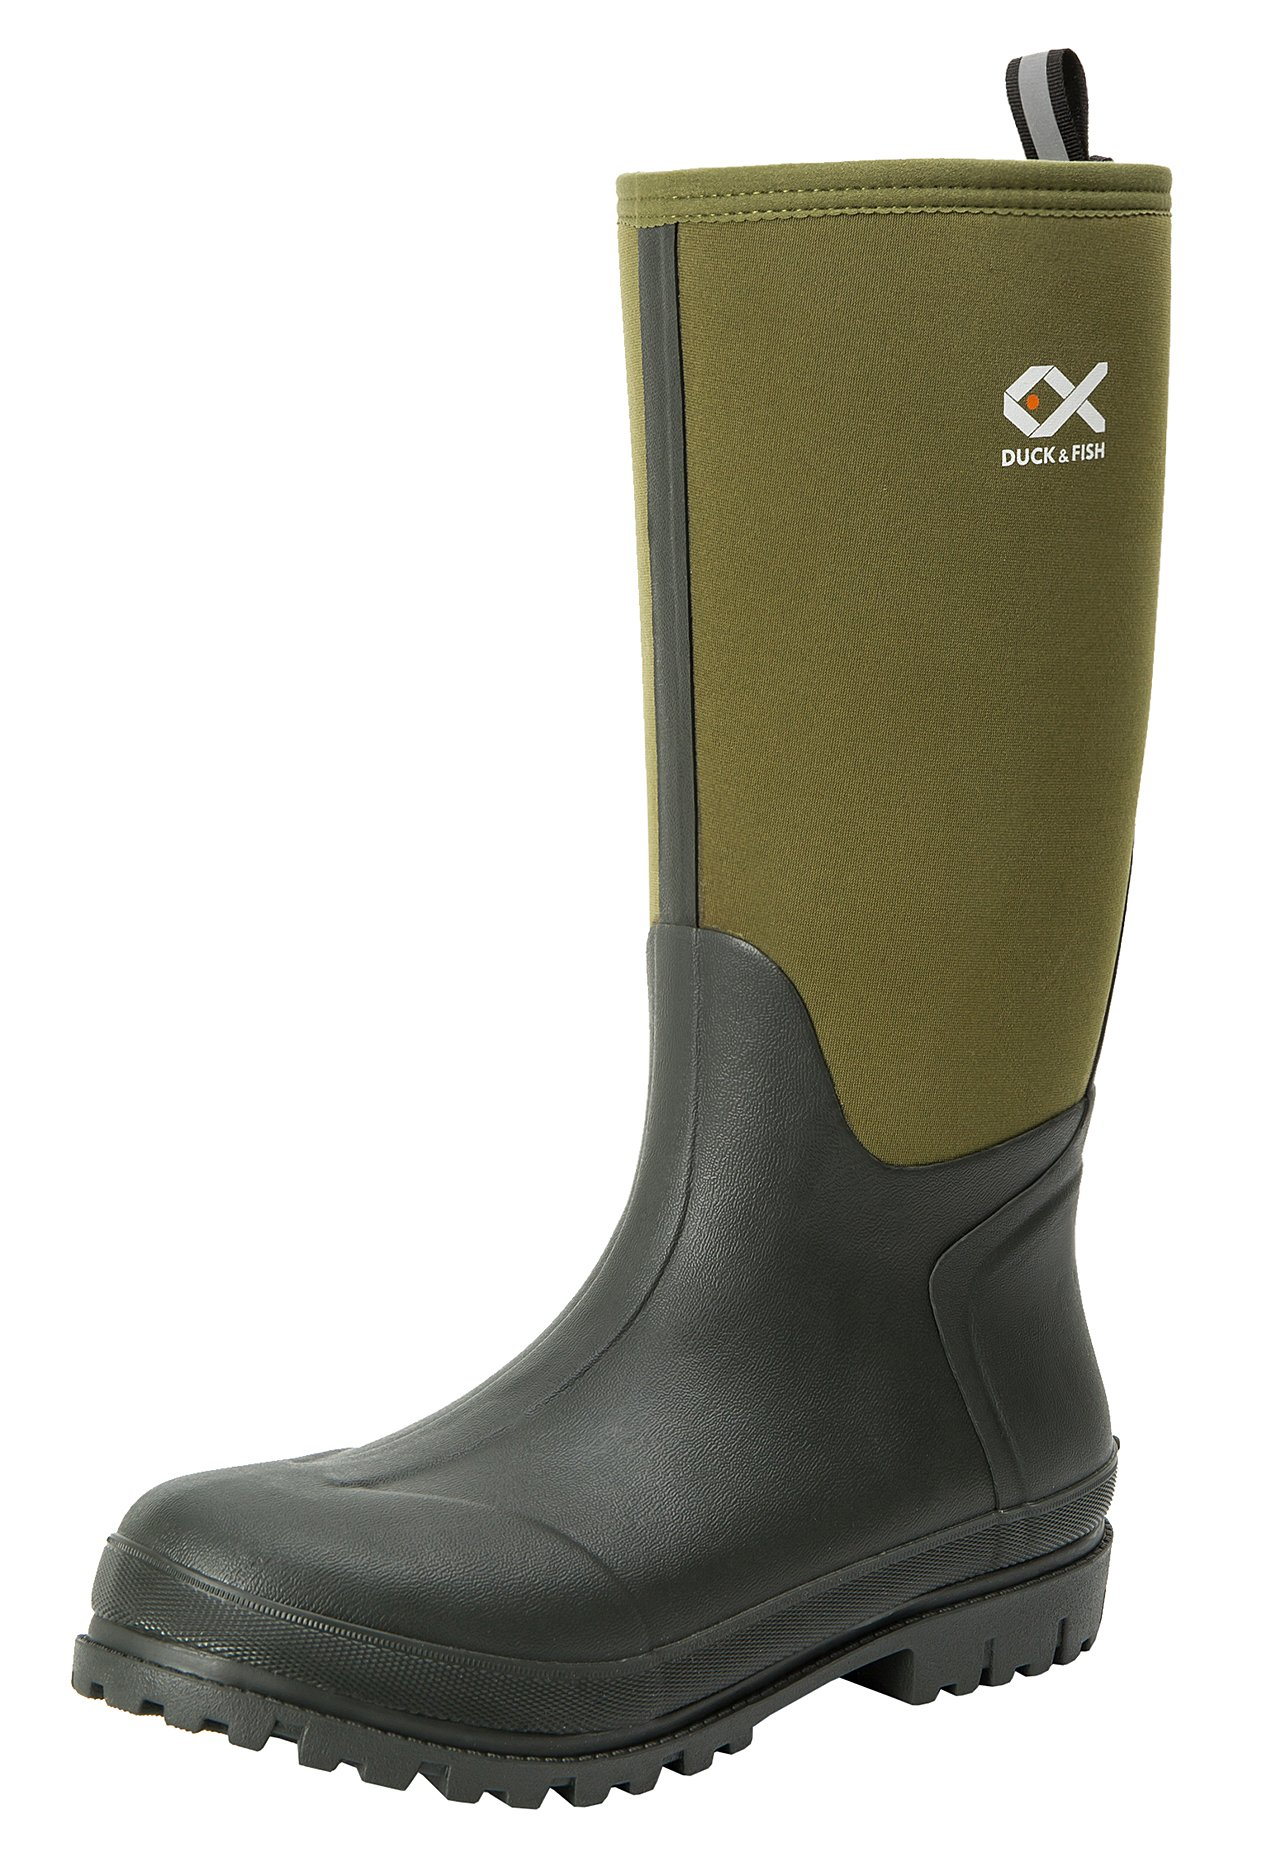 Duck Fish 16'' Fishing Hunting Neoprene Rubber Molded Outsole Knee Boot (US 11, Green)